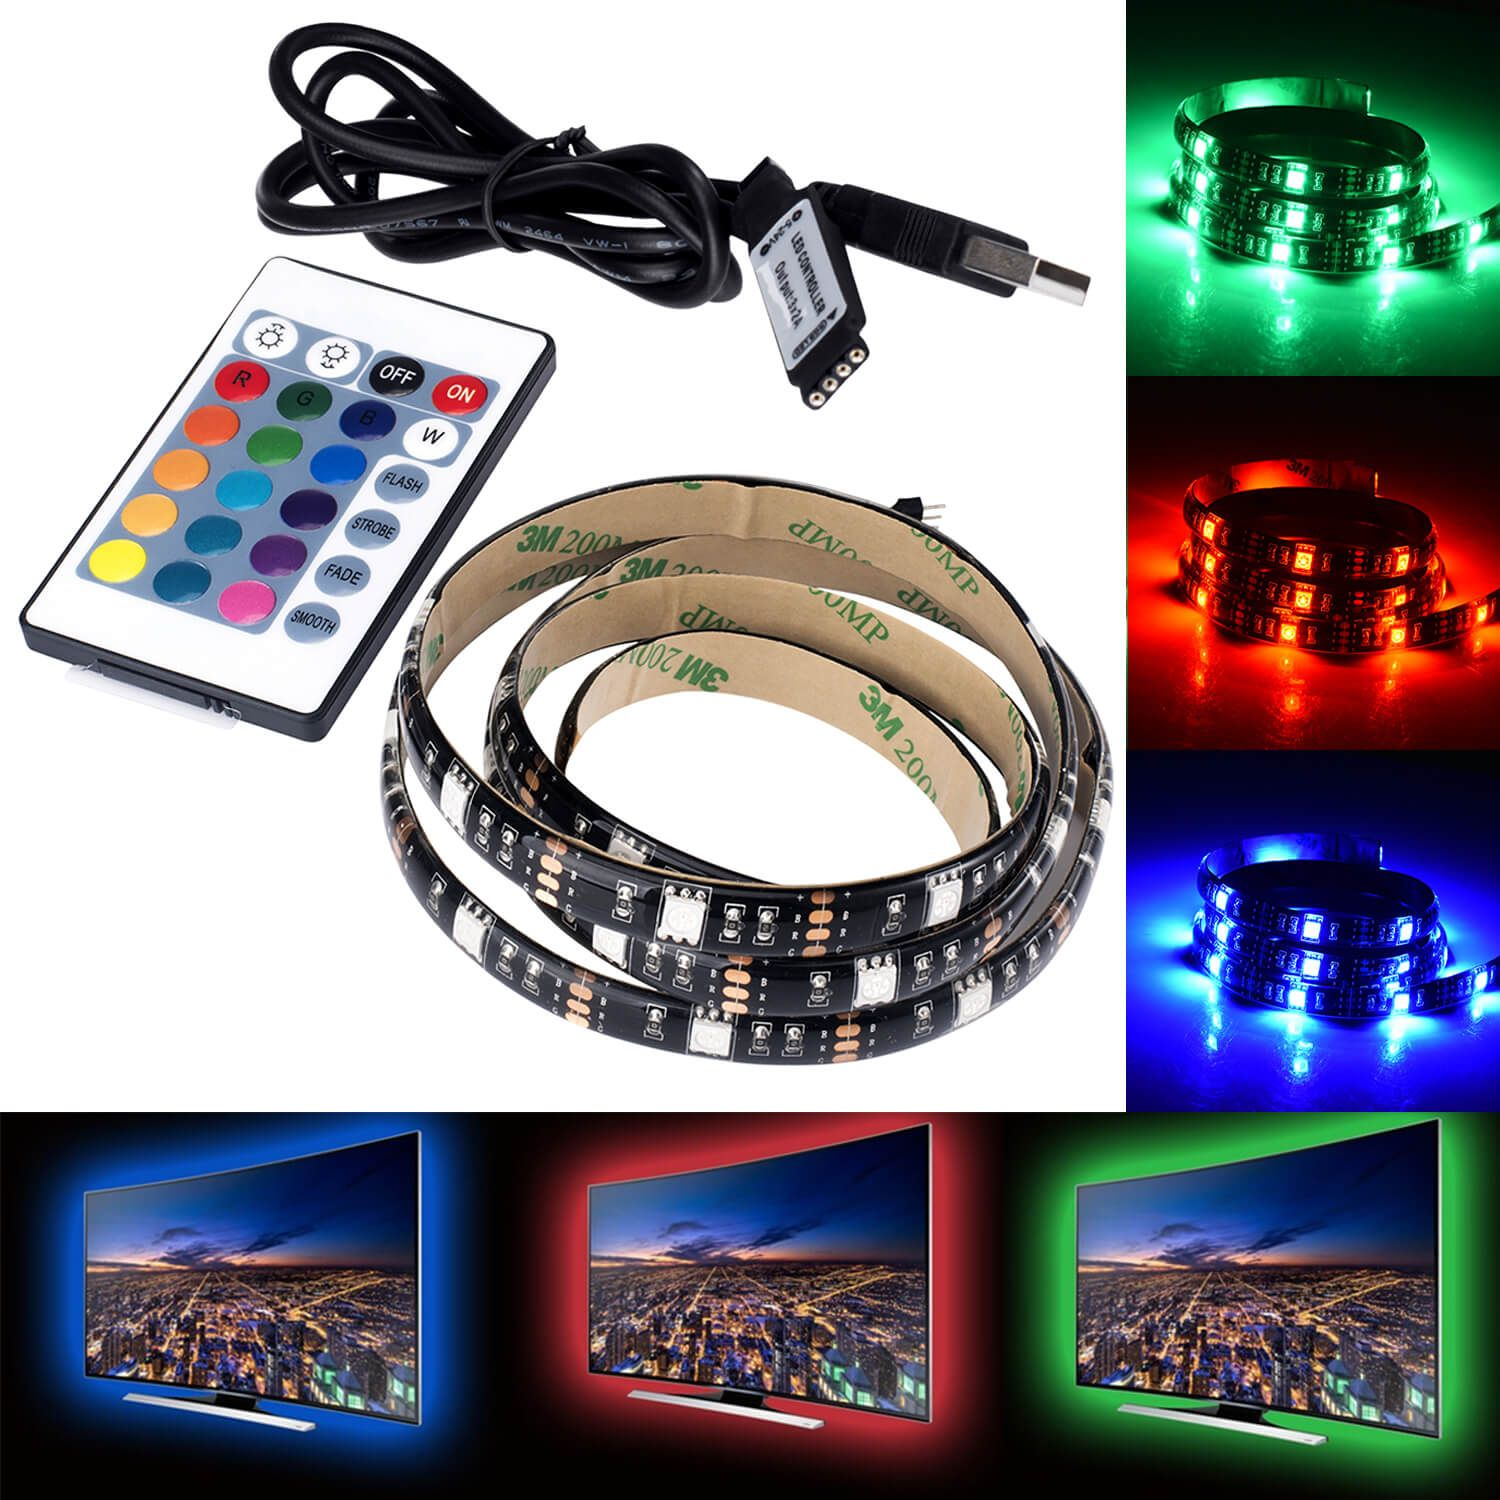 RGB USB LED Strip Light TV Computer Backlight 5V USB LED Strip 5050 RBG 5//10M UK